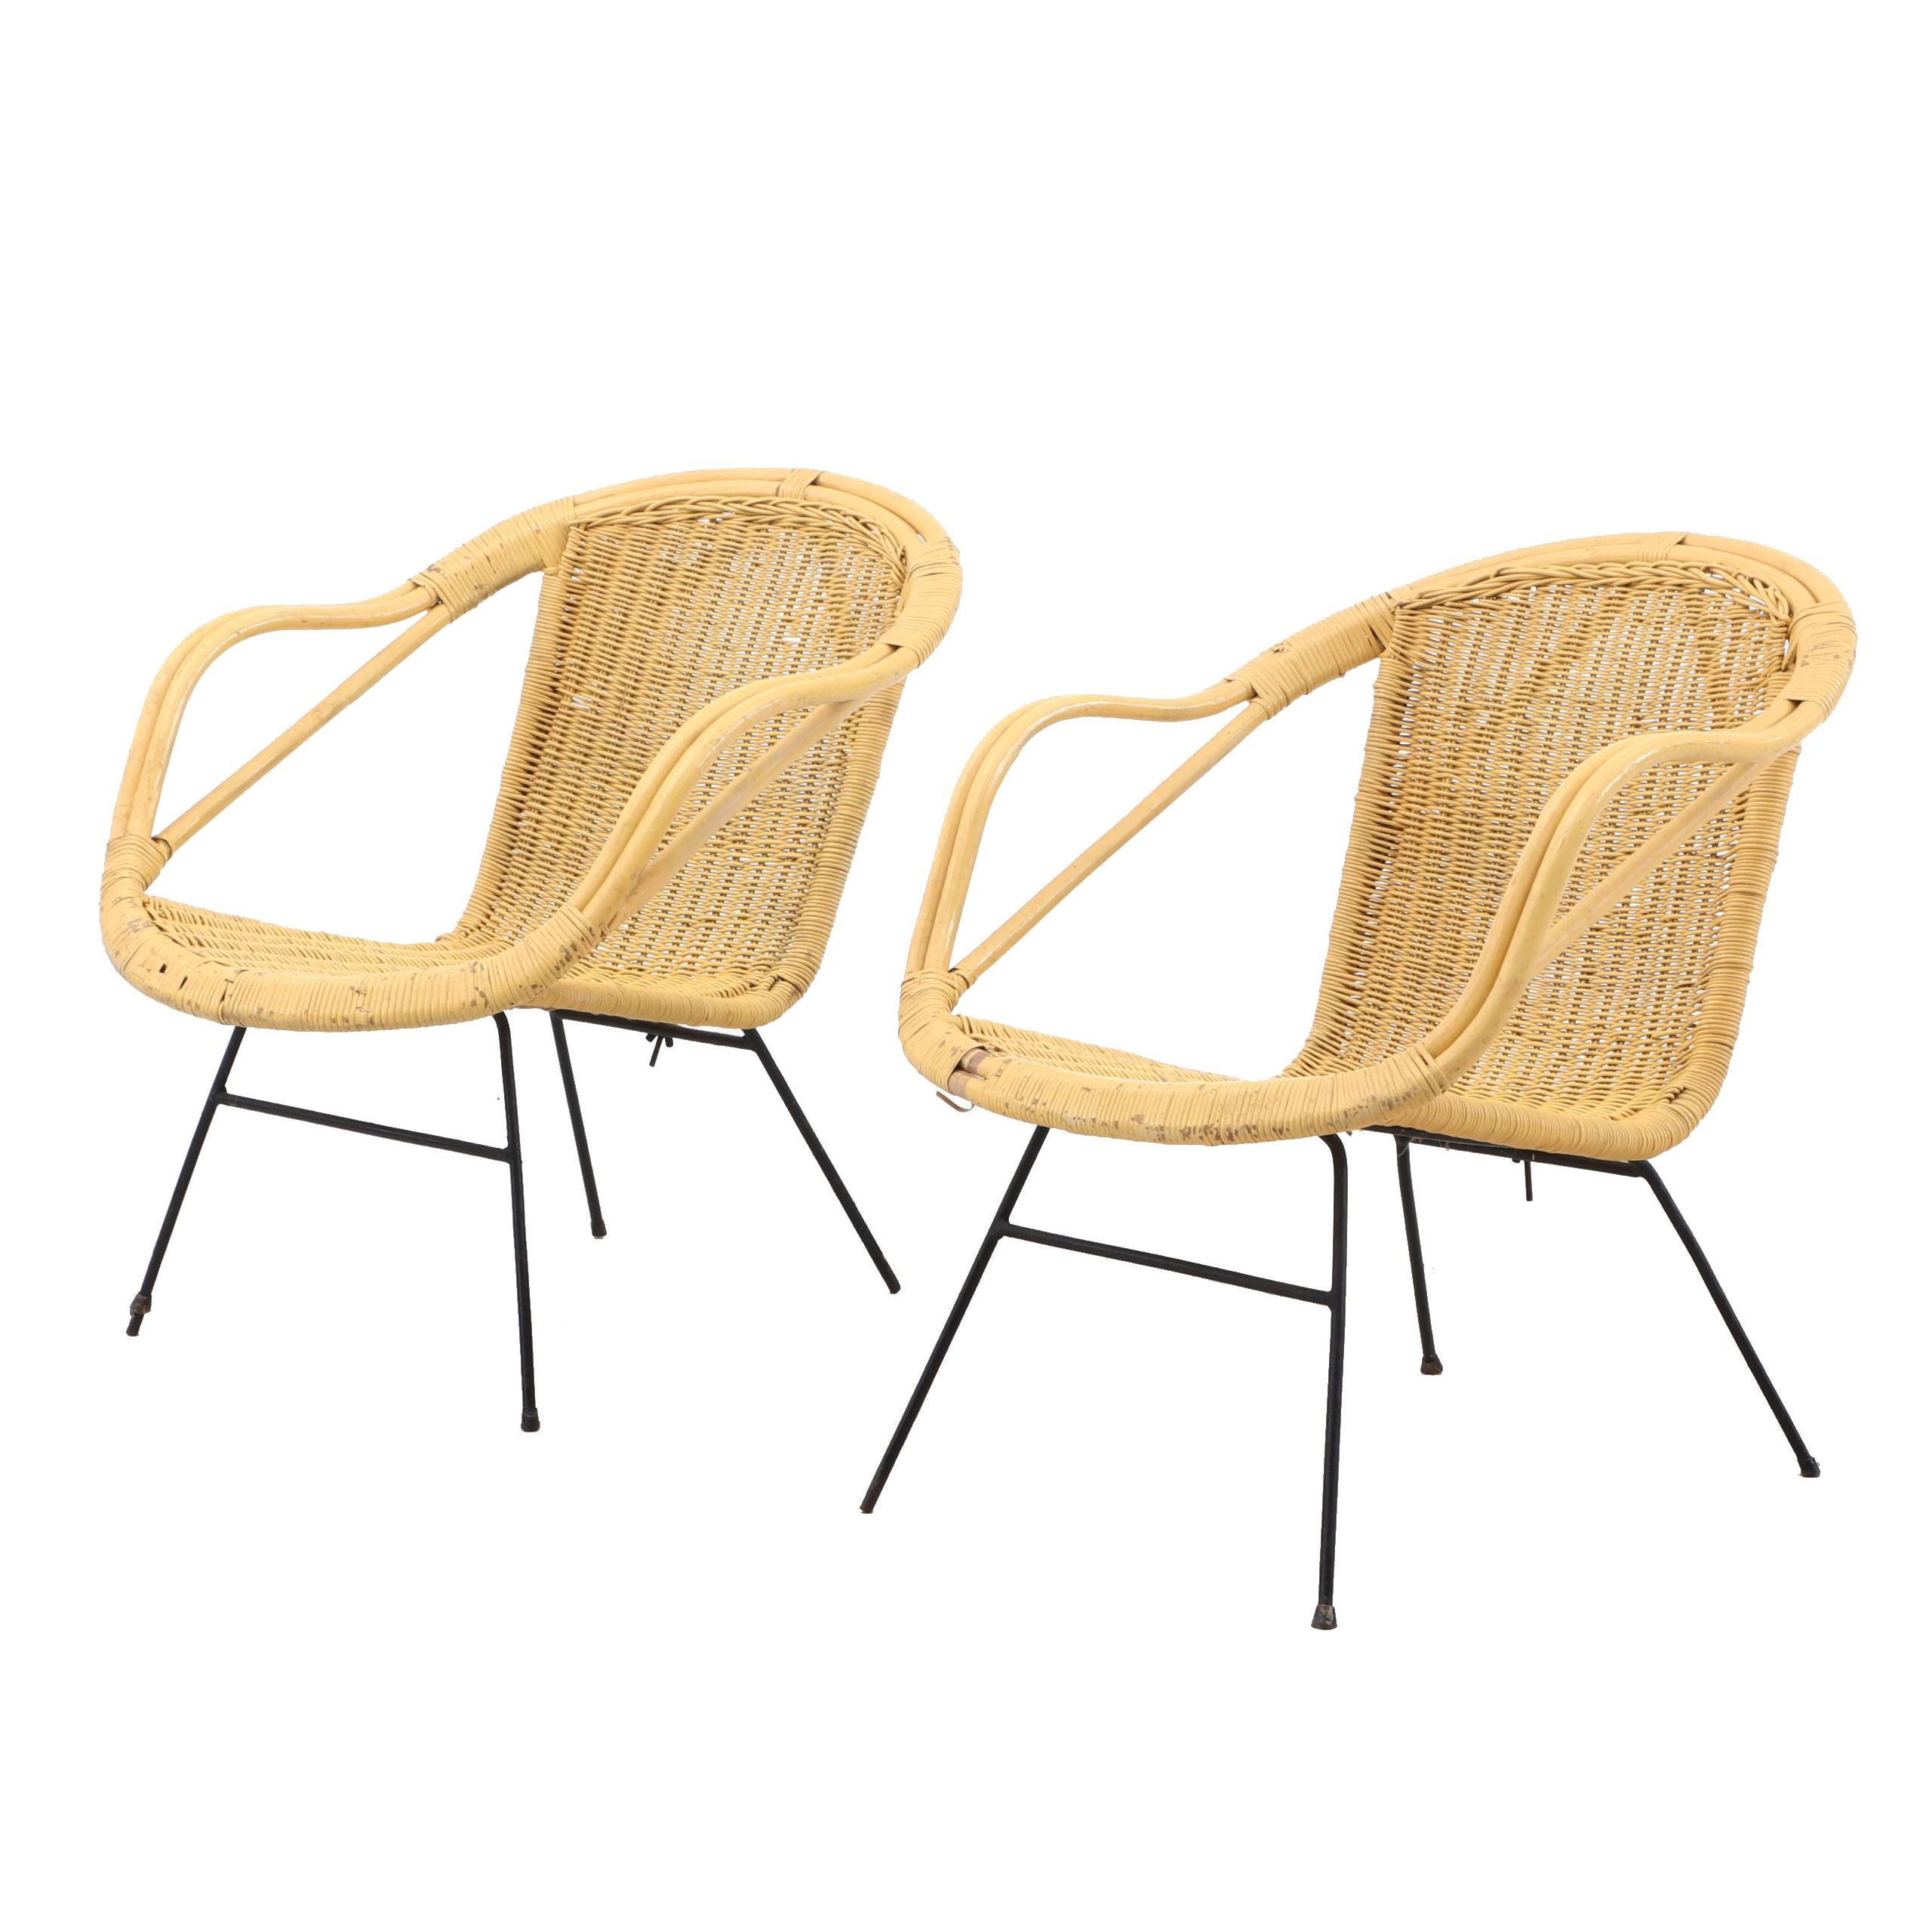 Two Yellow Wicker Chairs